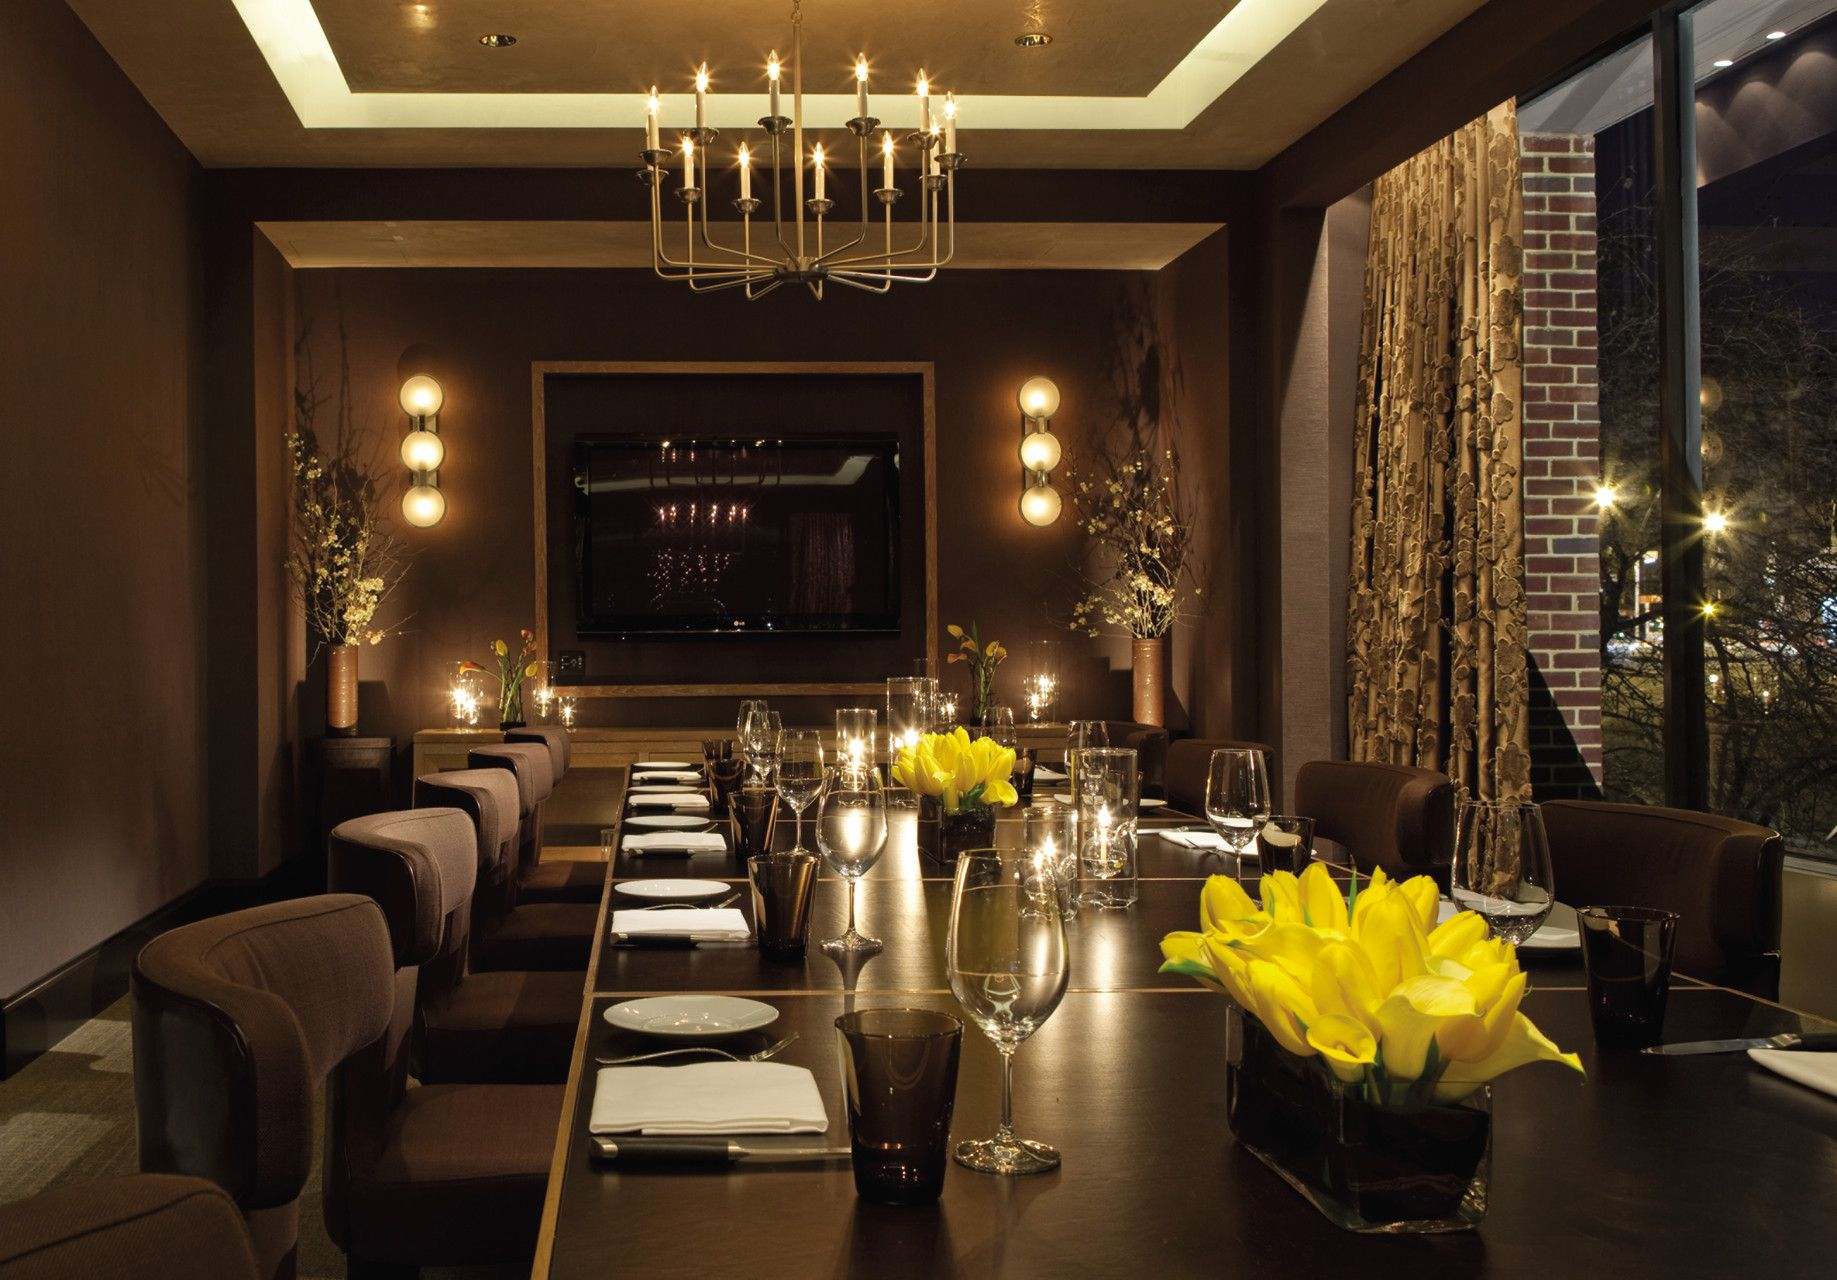 Bourbon Steak S Private Dining Room A Great E For Any Meeting Or Occasion